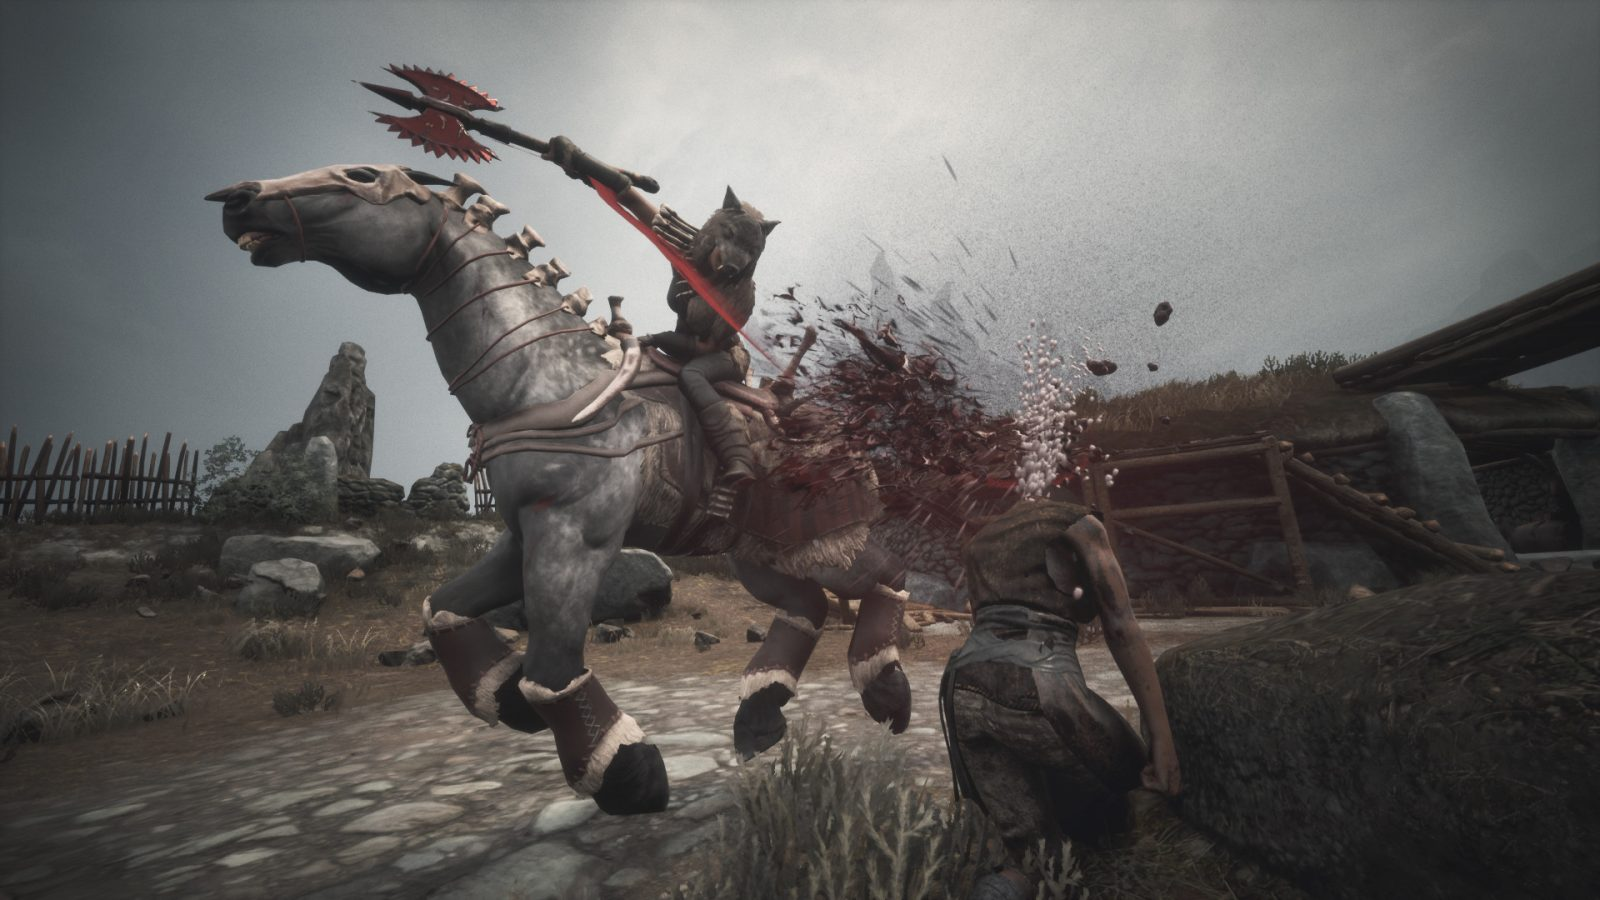 Conan Exiles Gets Mounts in Latest Update